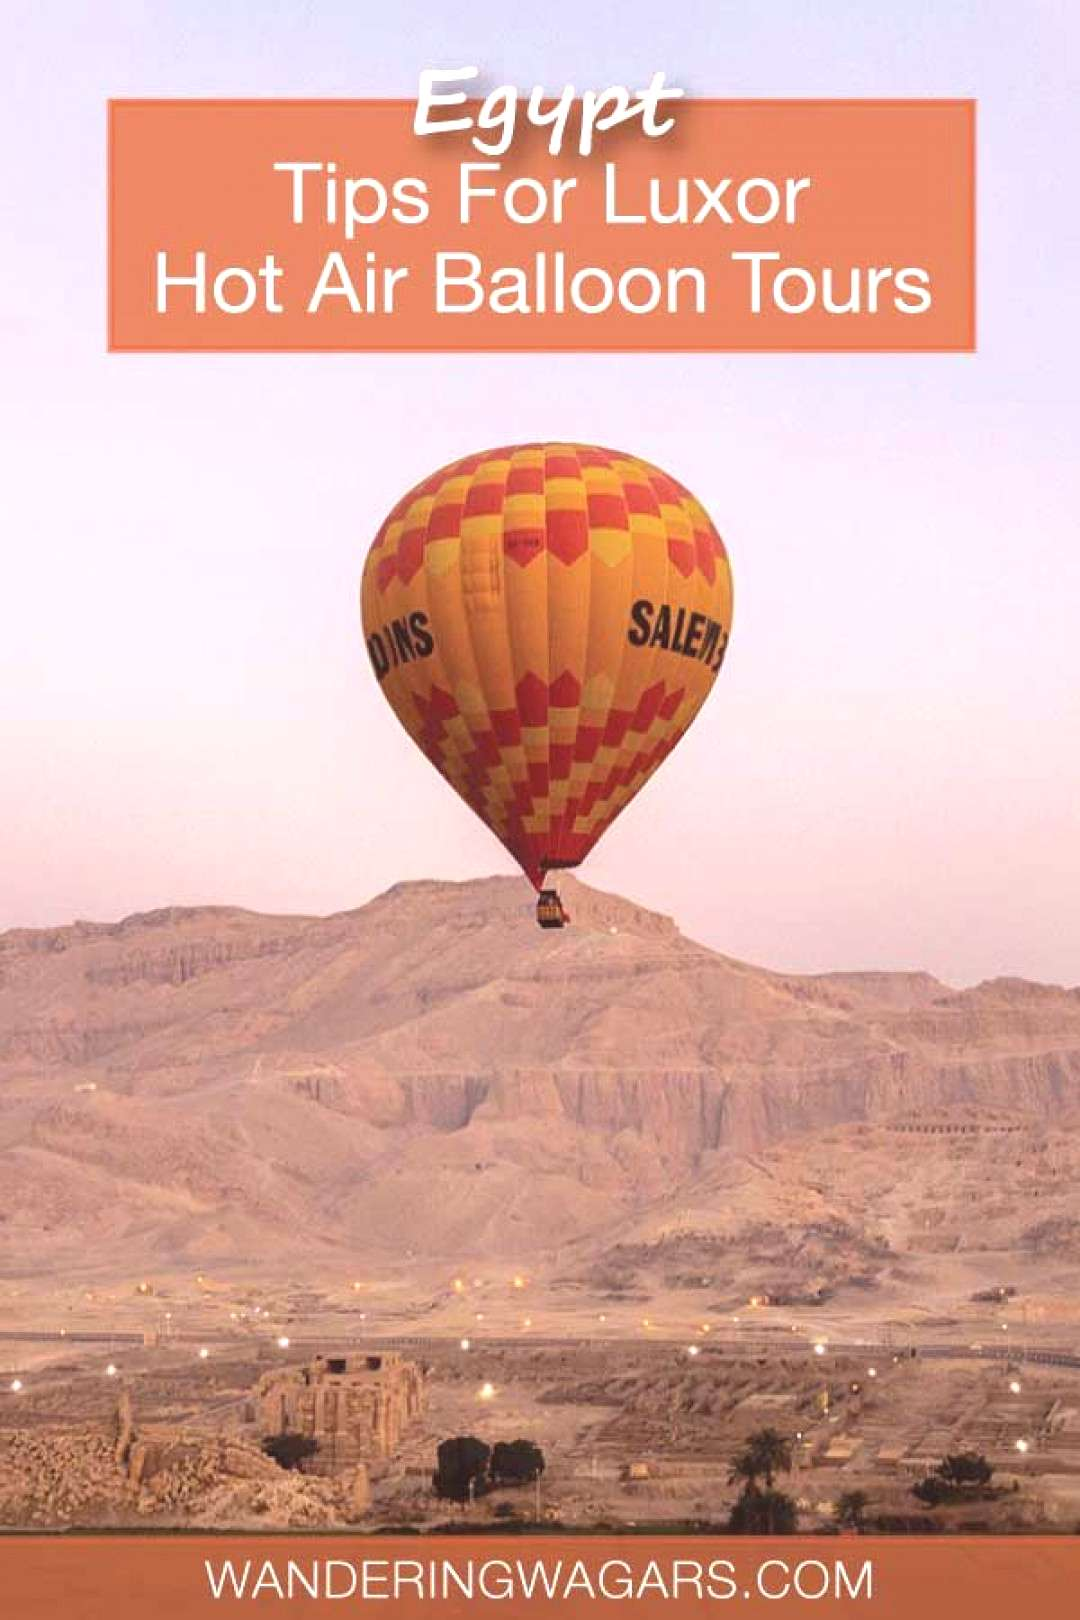 Hot Air Balloon Tour In Luxor Egypt Everything You Need To Know Before You Go - Adventure Family T